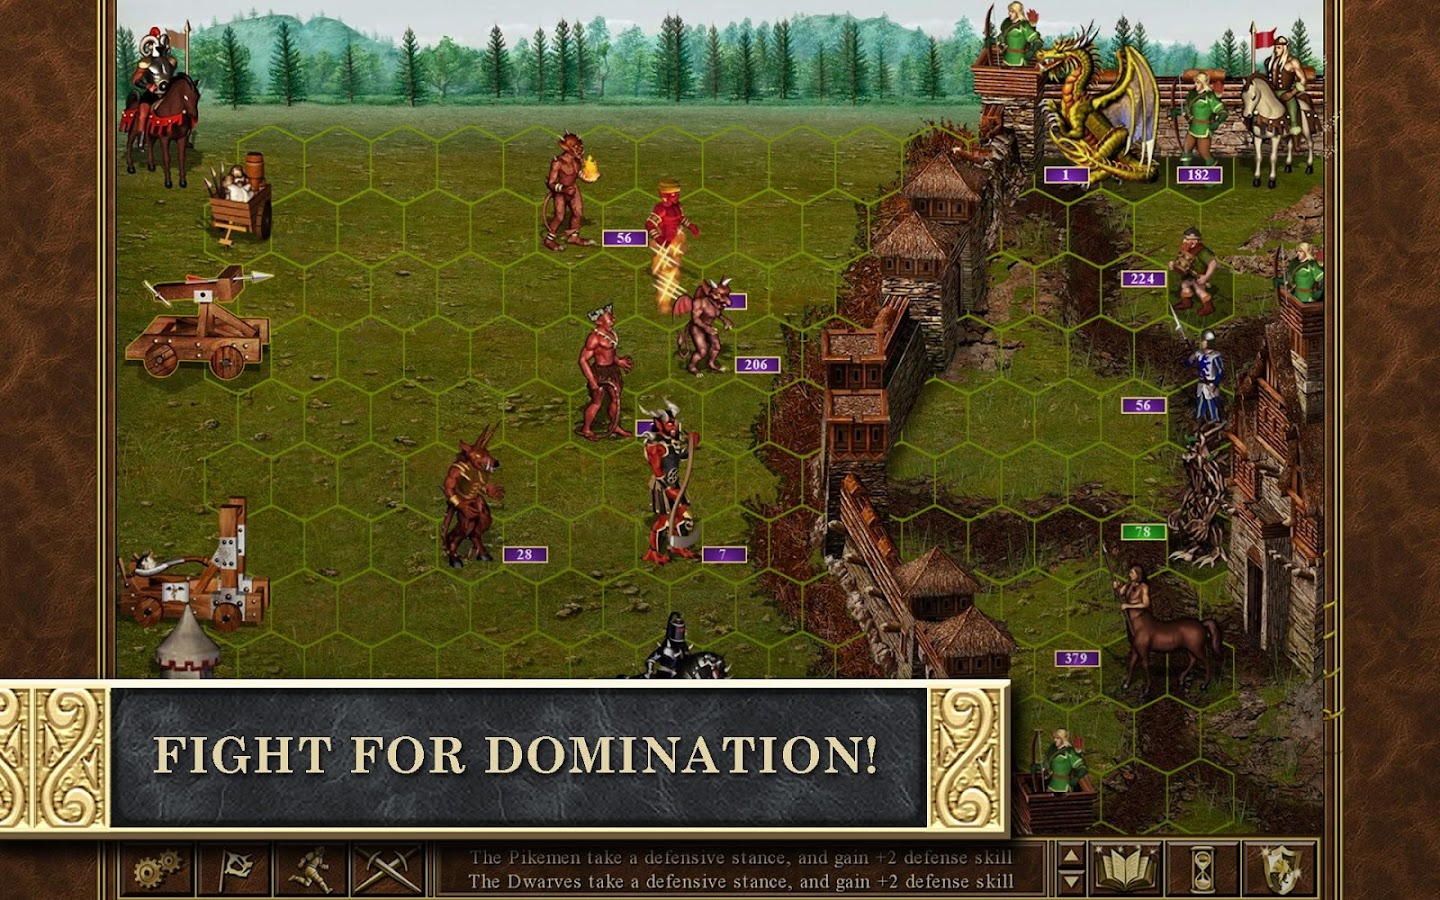 Heroes of Might & Magic III HD Screenshot 10